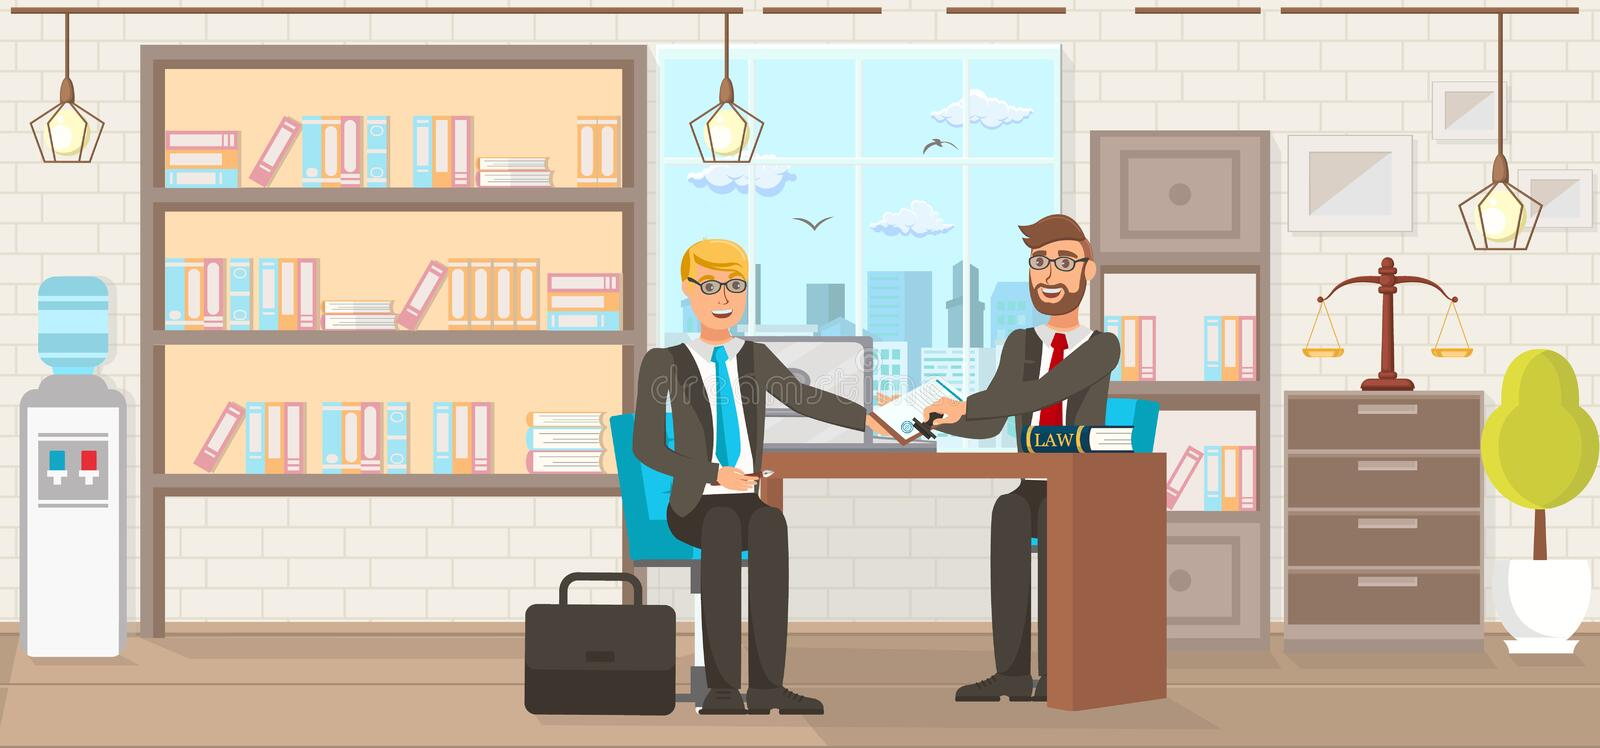 Vector Flat Law Firm Consumer Protection Services. Lawyer Helps Client Fill Out Document Signing and Stamping Office. Study Room with Books Young Guy in Suit royalty free illustration